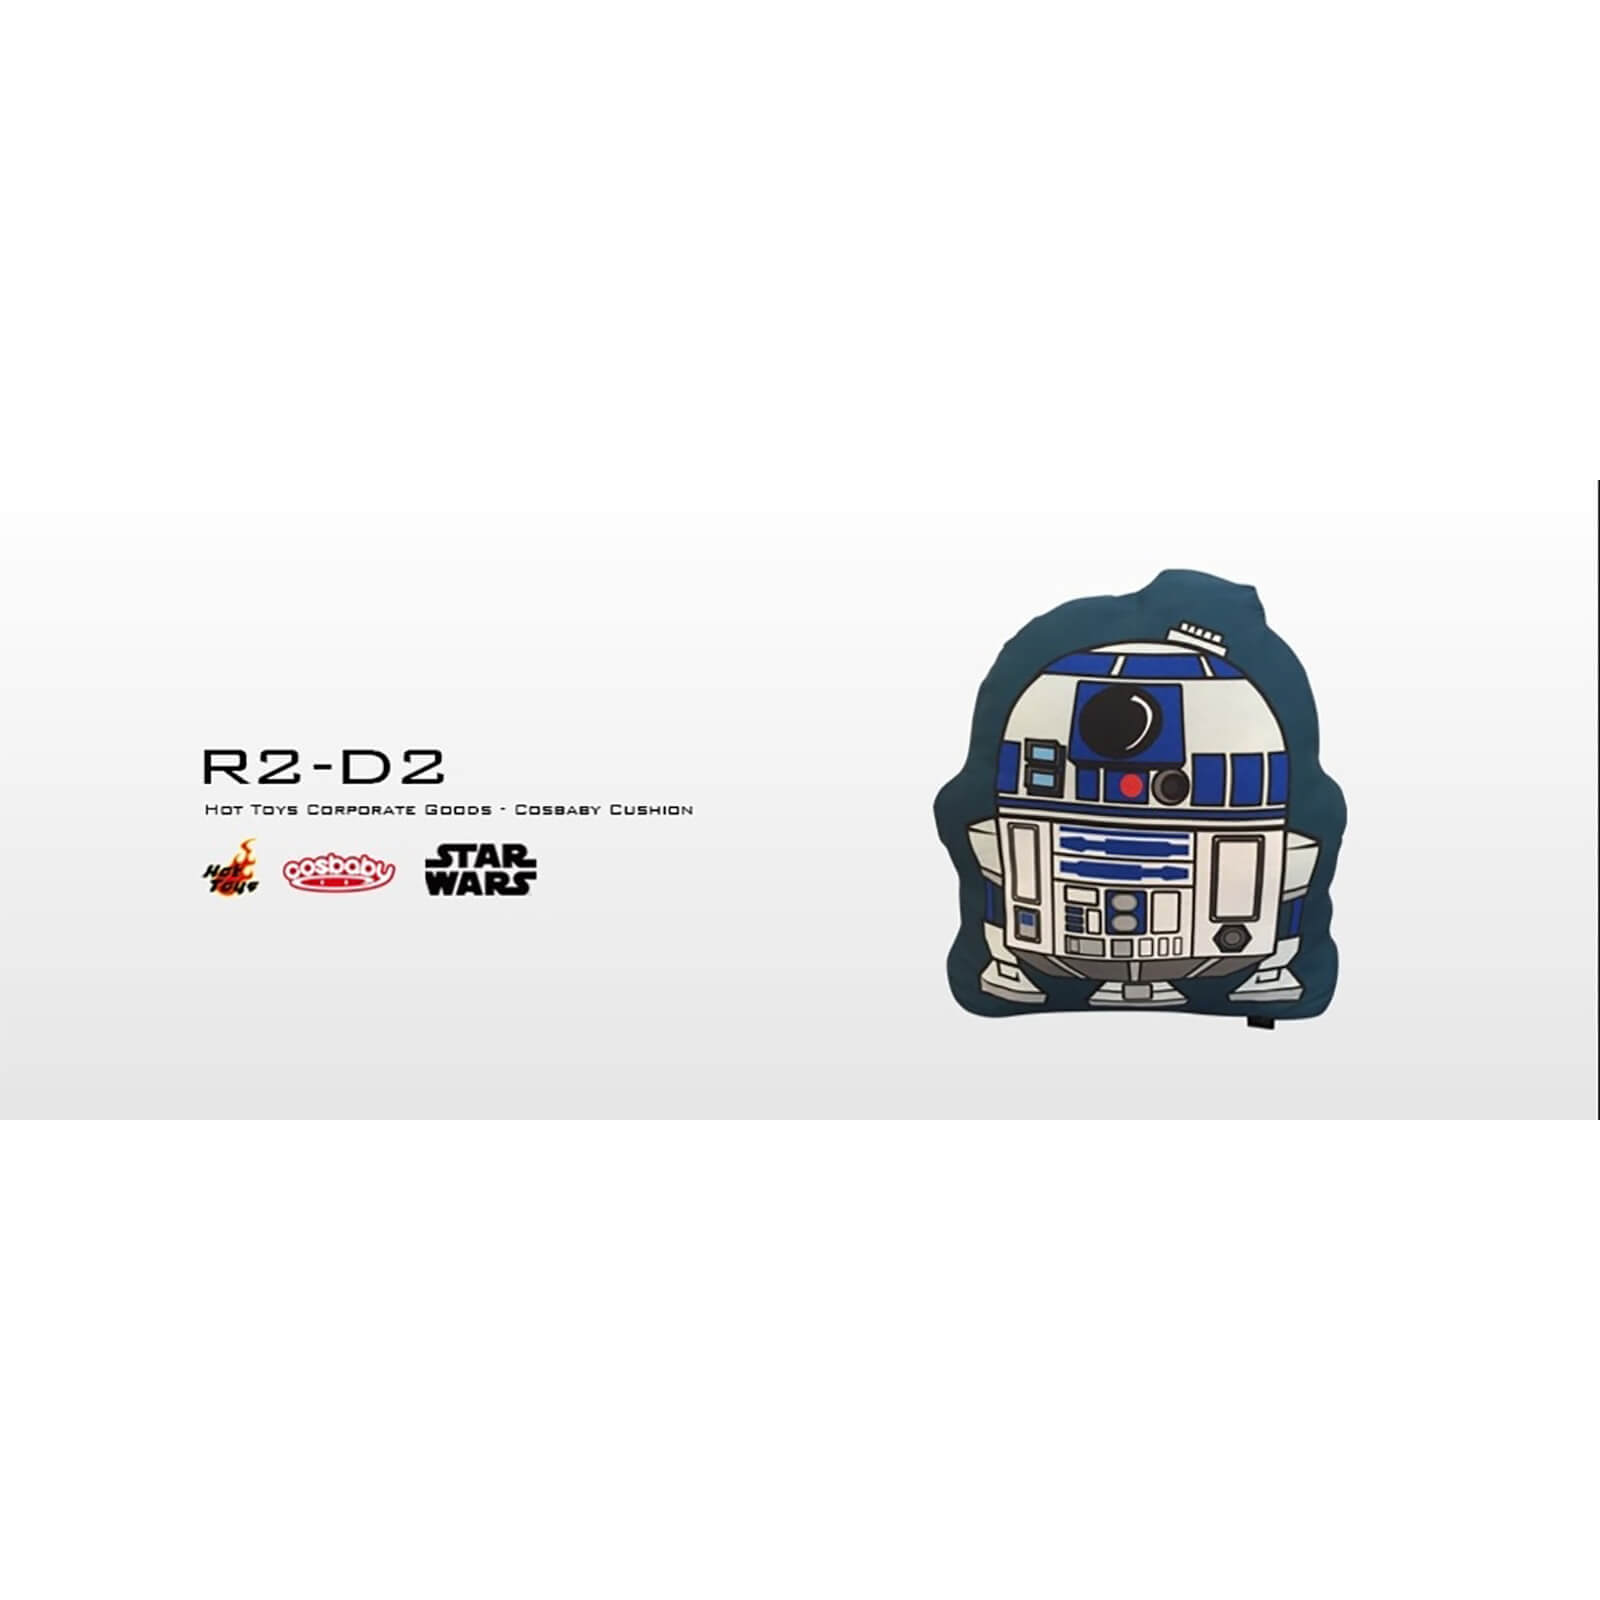 Hot Toys Cosbaby Star Wars Cushion - R2-D2